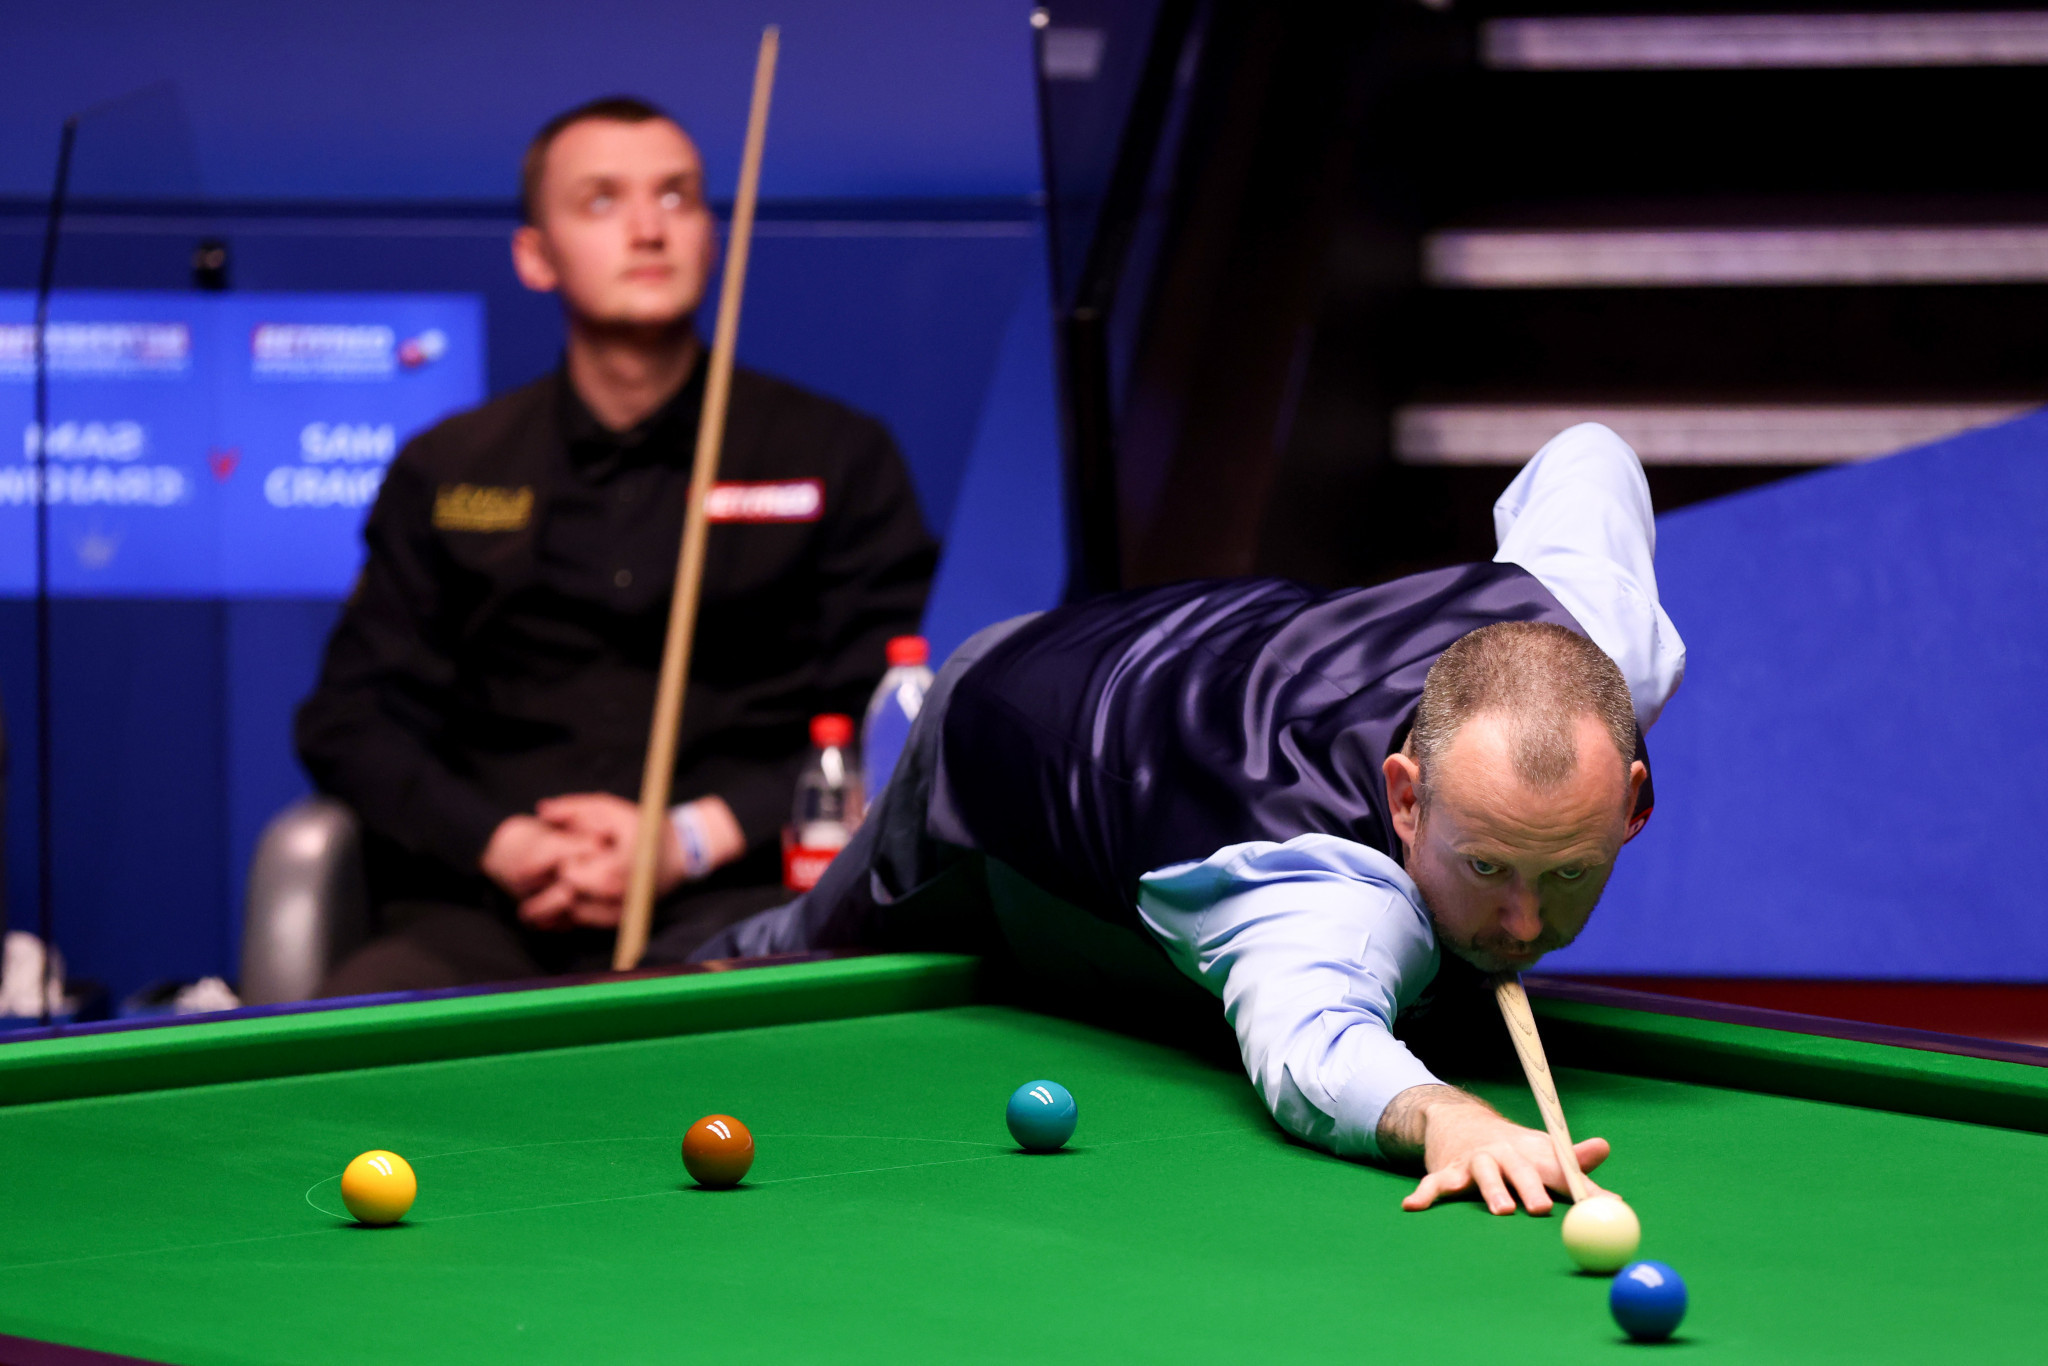 Mark Williams of Wales will face John Higgins in a rematch of the 2018 final, after he beat Crucible debutant Sam Craigie ©Getty Images